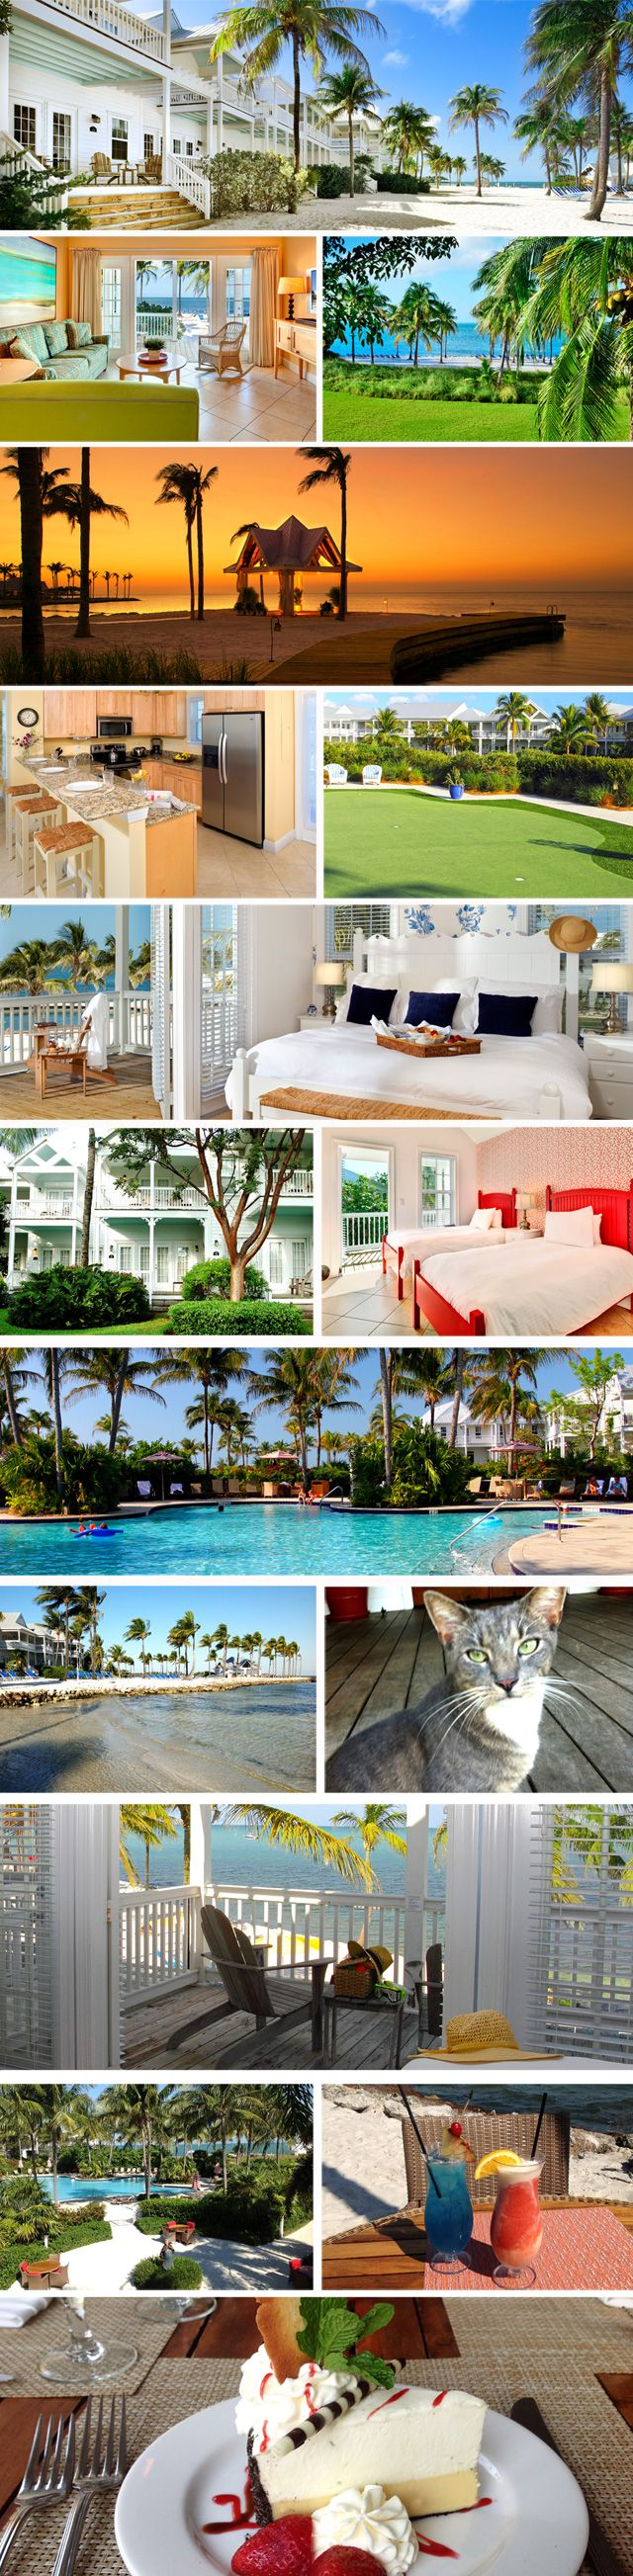 Photo Blog: The top reasons to visit Tranquility Bay Beach House Resort in Marathon, Florida.